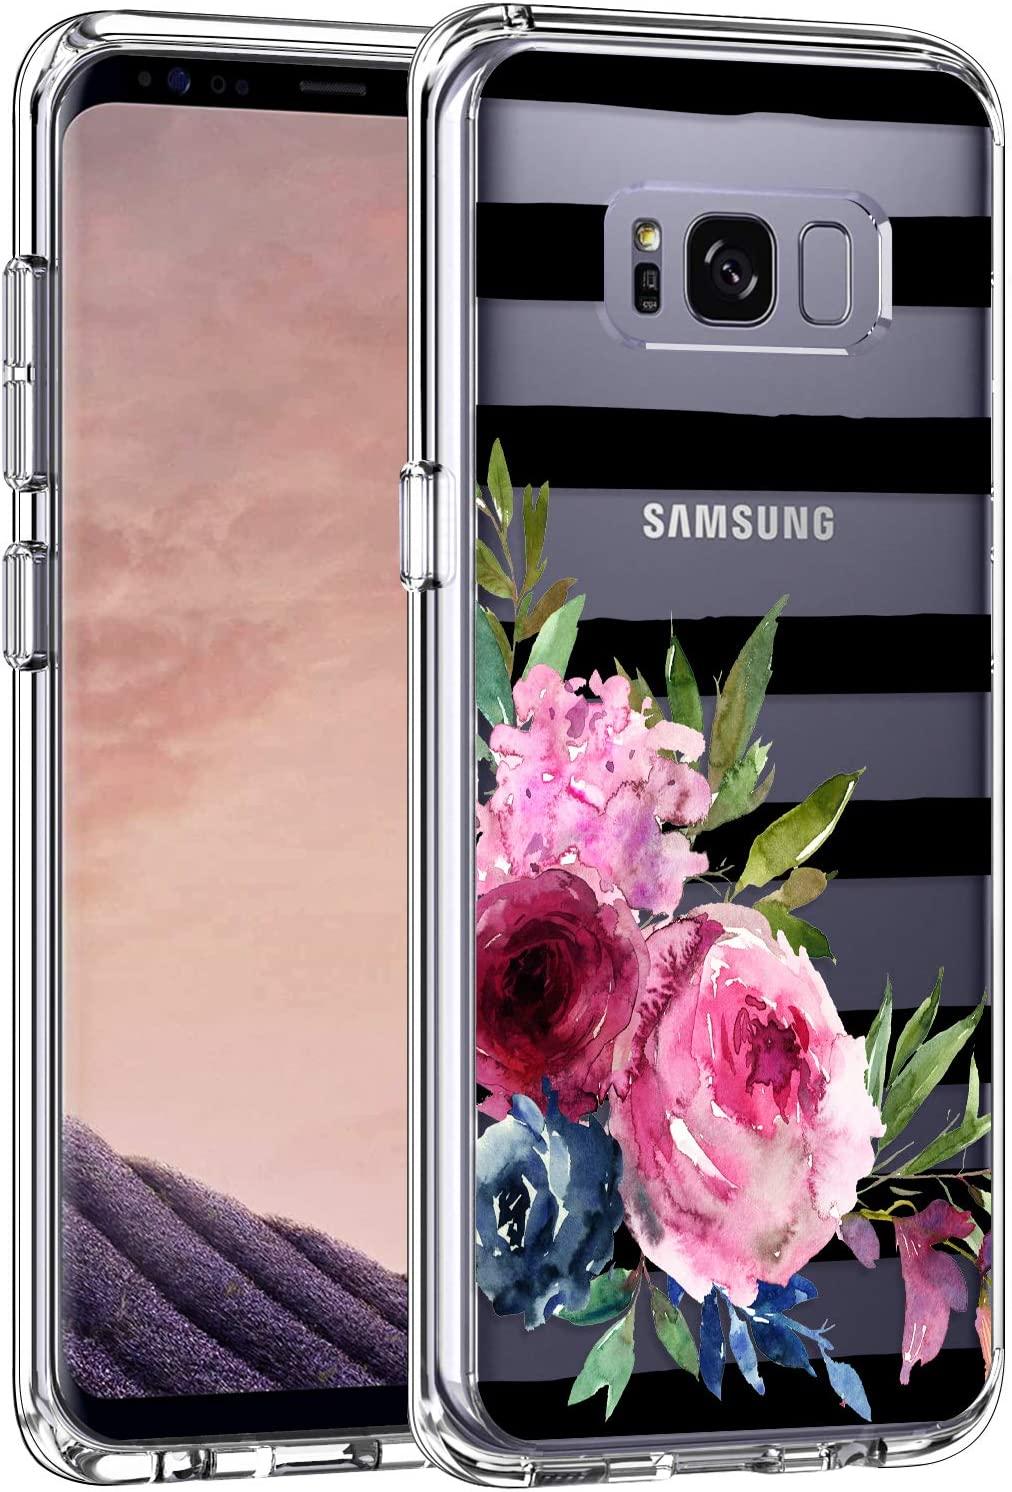 LUHOURI Samsung Galaxy S8 Case Clear with Elegant Flowers Design for Girls Women,Shockproof Hard PC Back Cover and Soft TPU Bumper Slim Fit Protective Phone Case for Galaxy S8